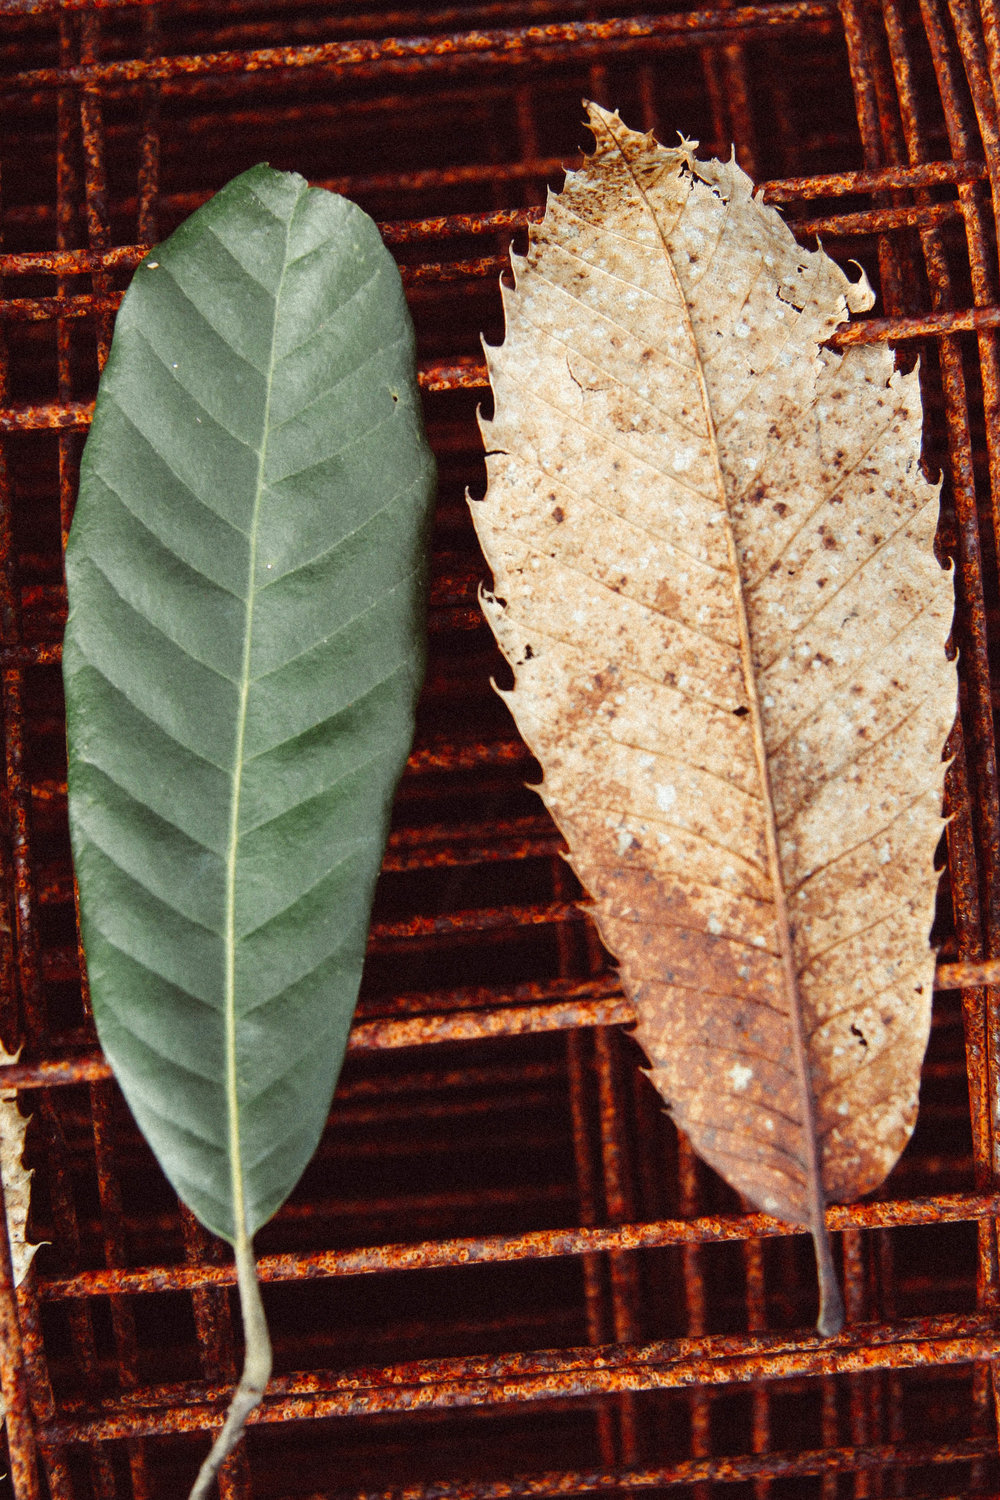 Tan Oak and Chestnut leaf comparison.